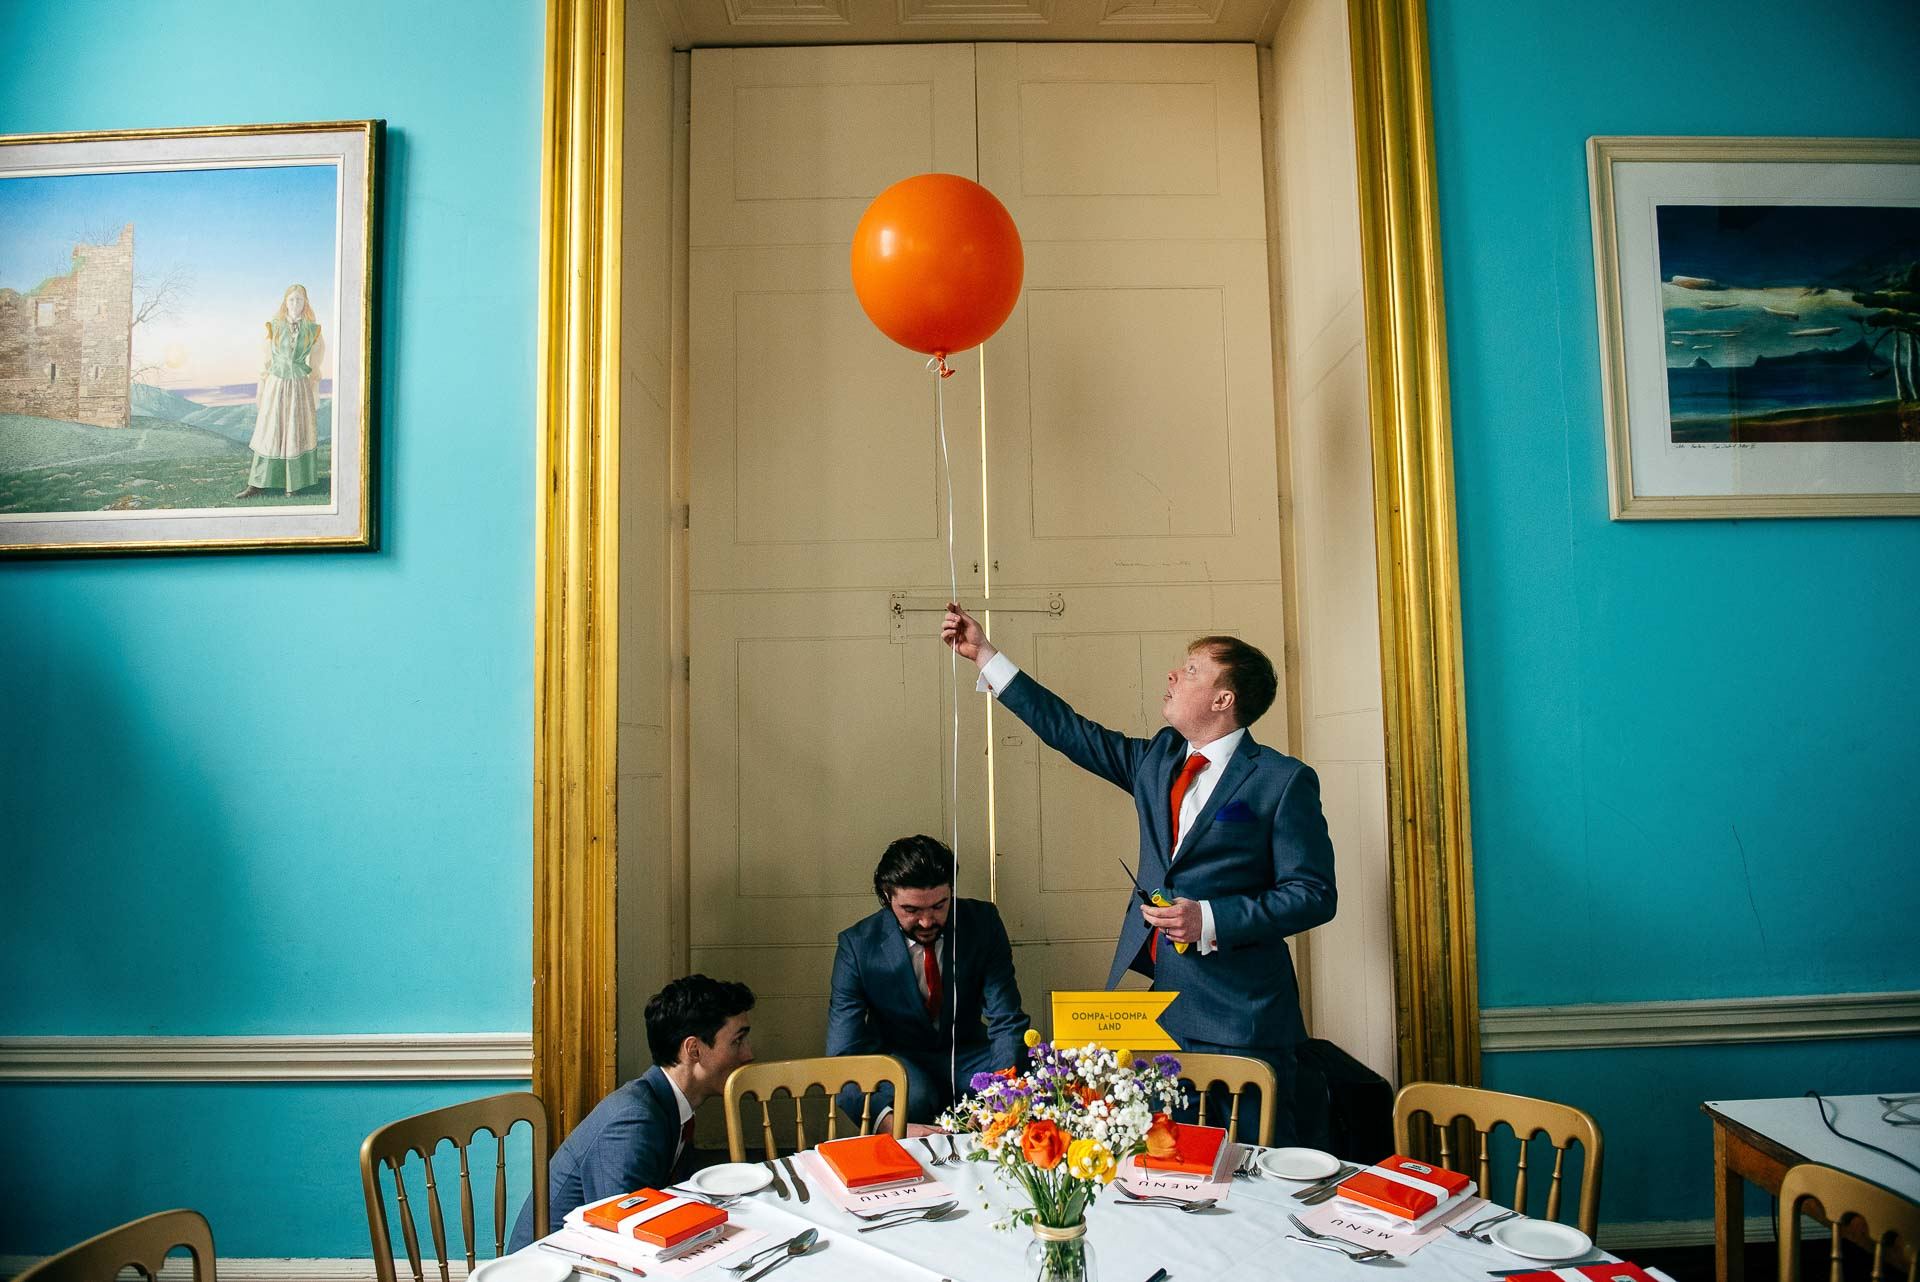 Ushers prepare the dining room at Walcot Hall Shropshire blowing up and placing balloons